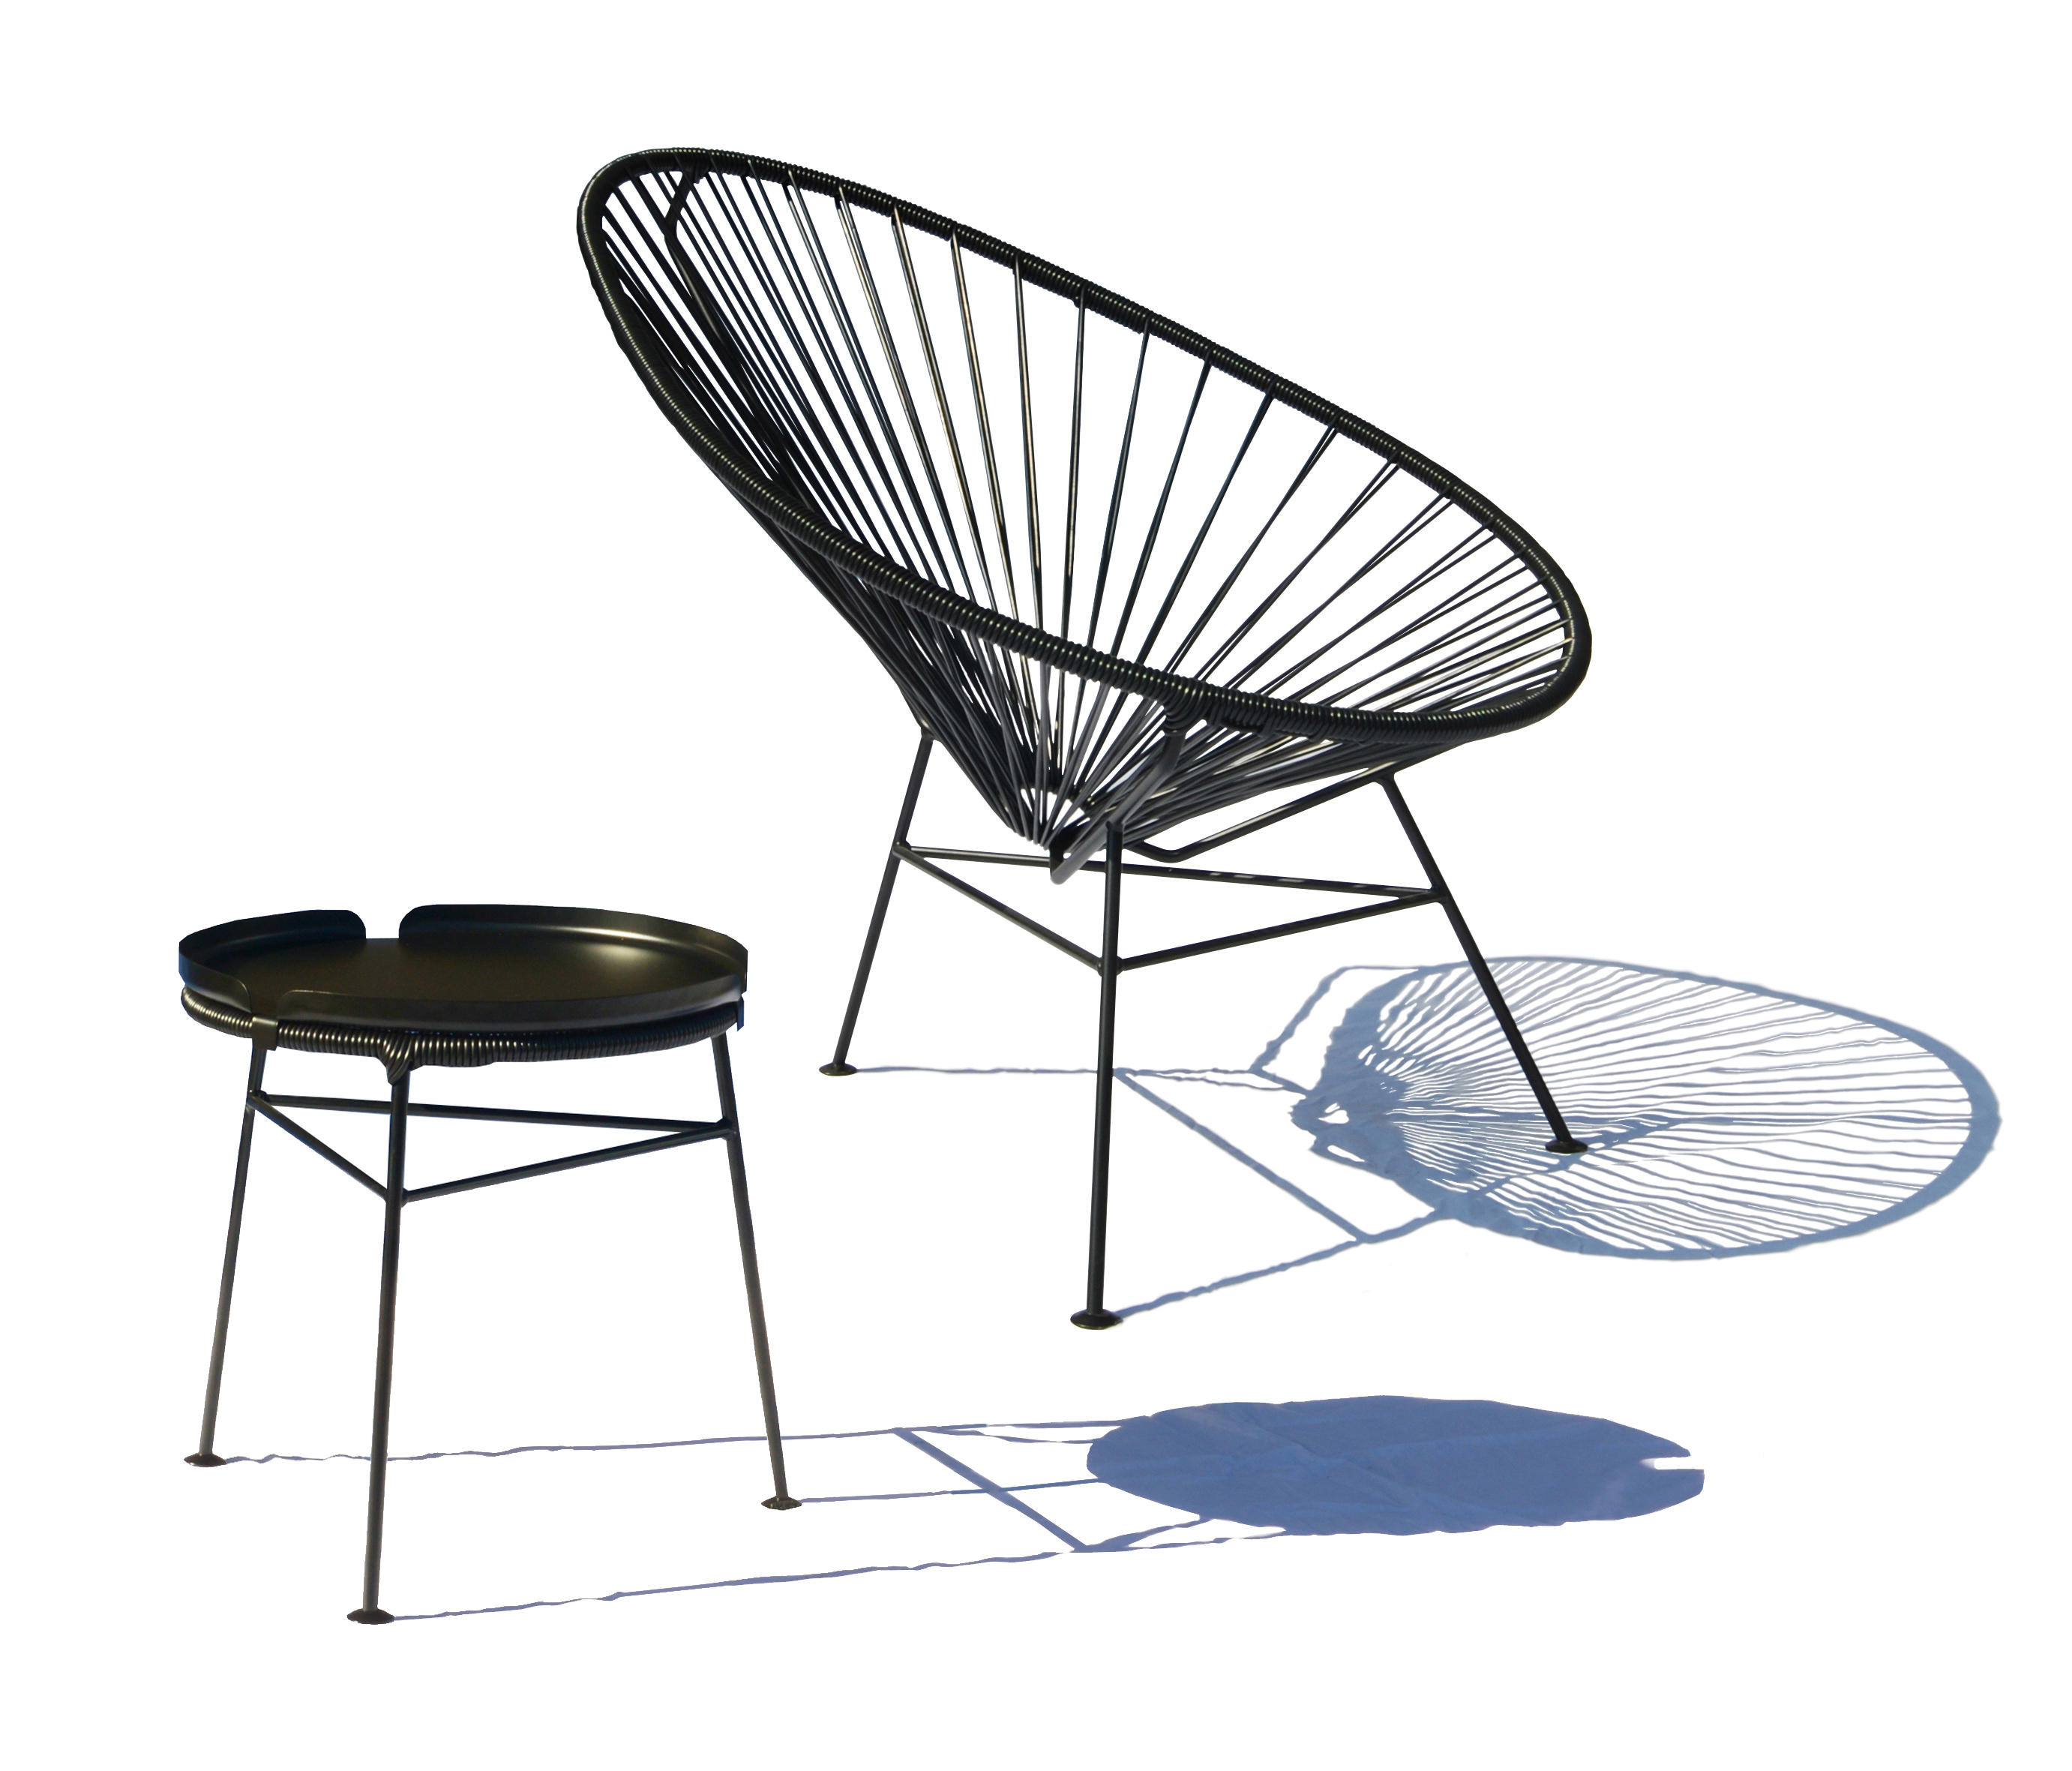 Acapulco chair garden armchairs from ok design architonic for Sedia acapulco